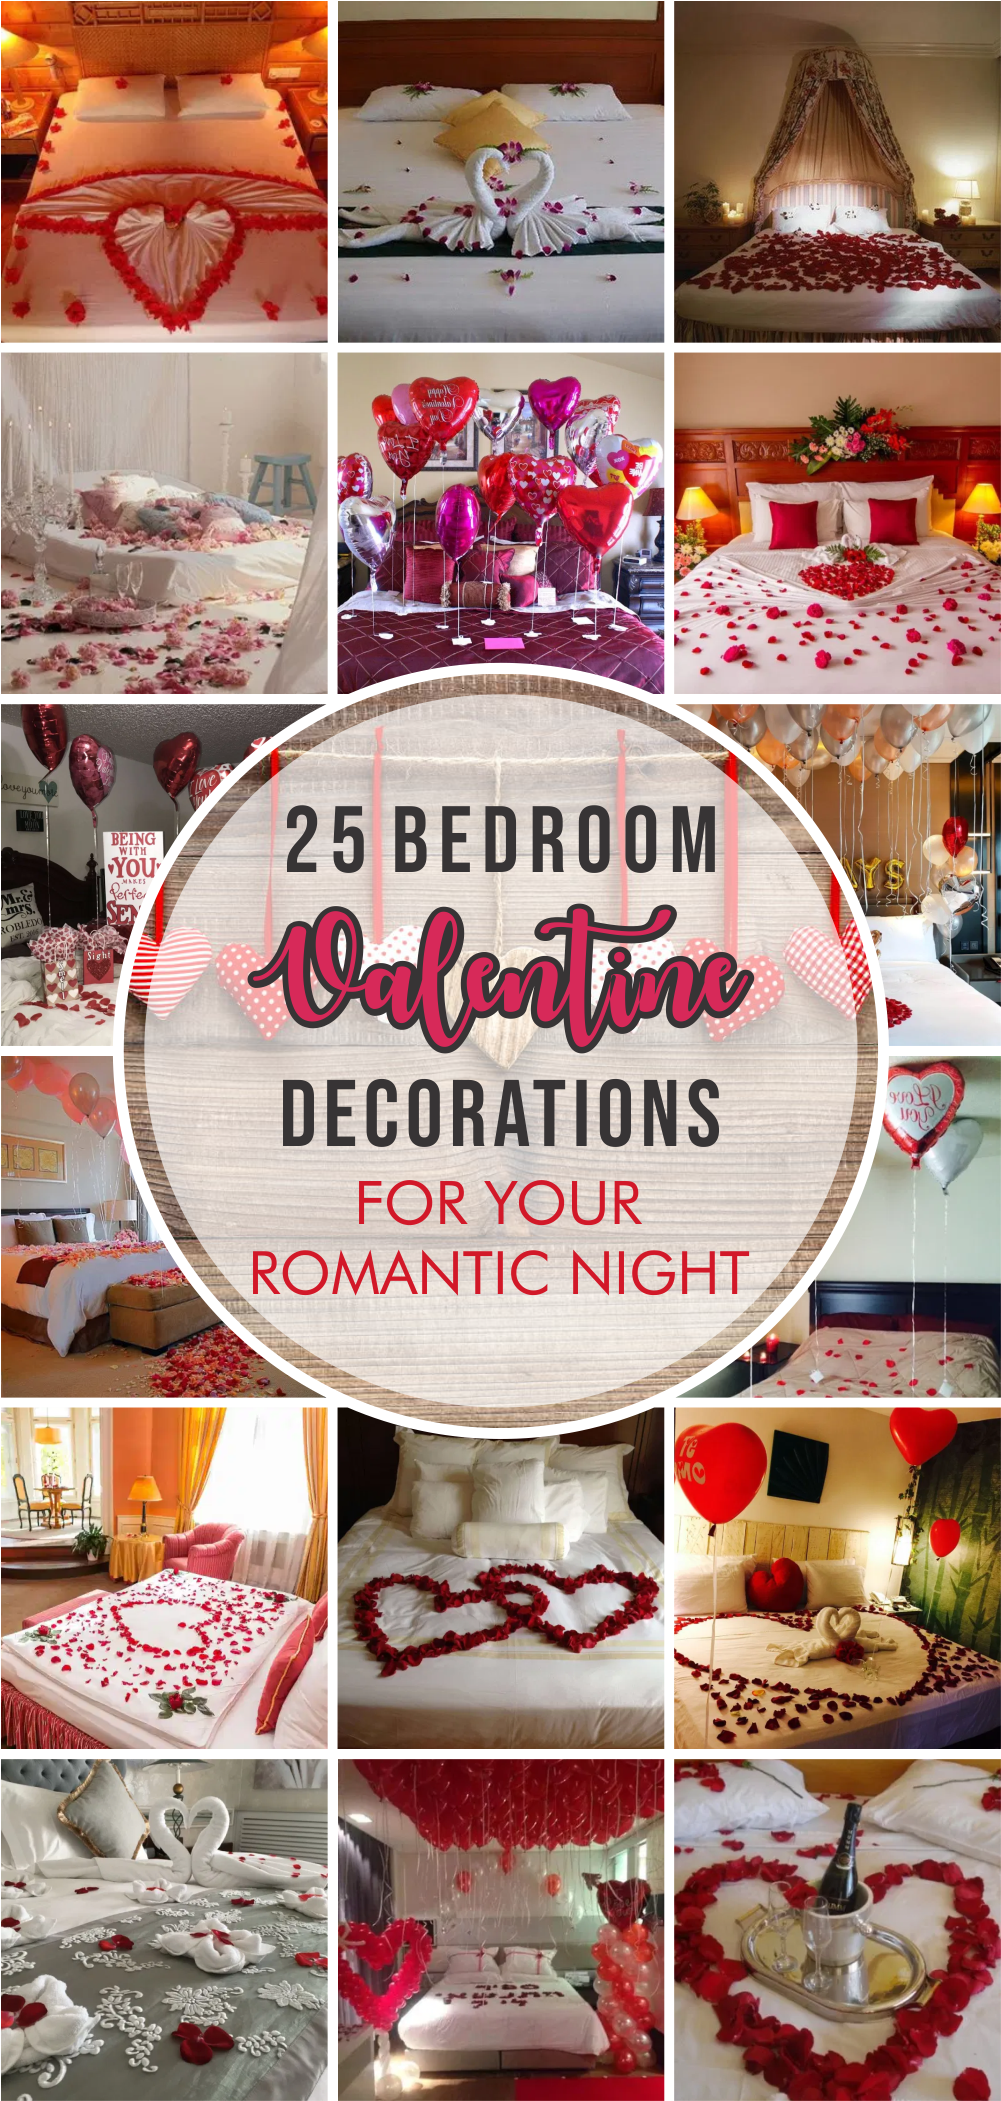 25-bedroom-valentine-decorations-for-your-romantic-night-1